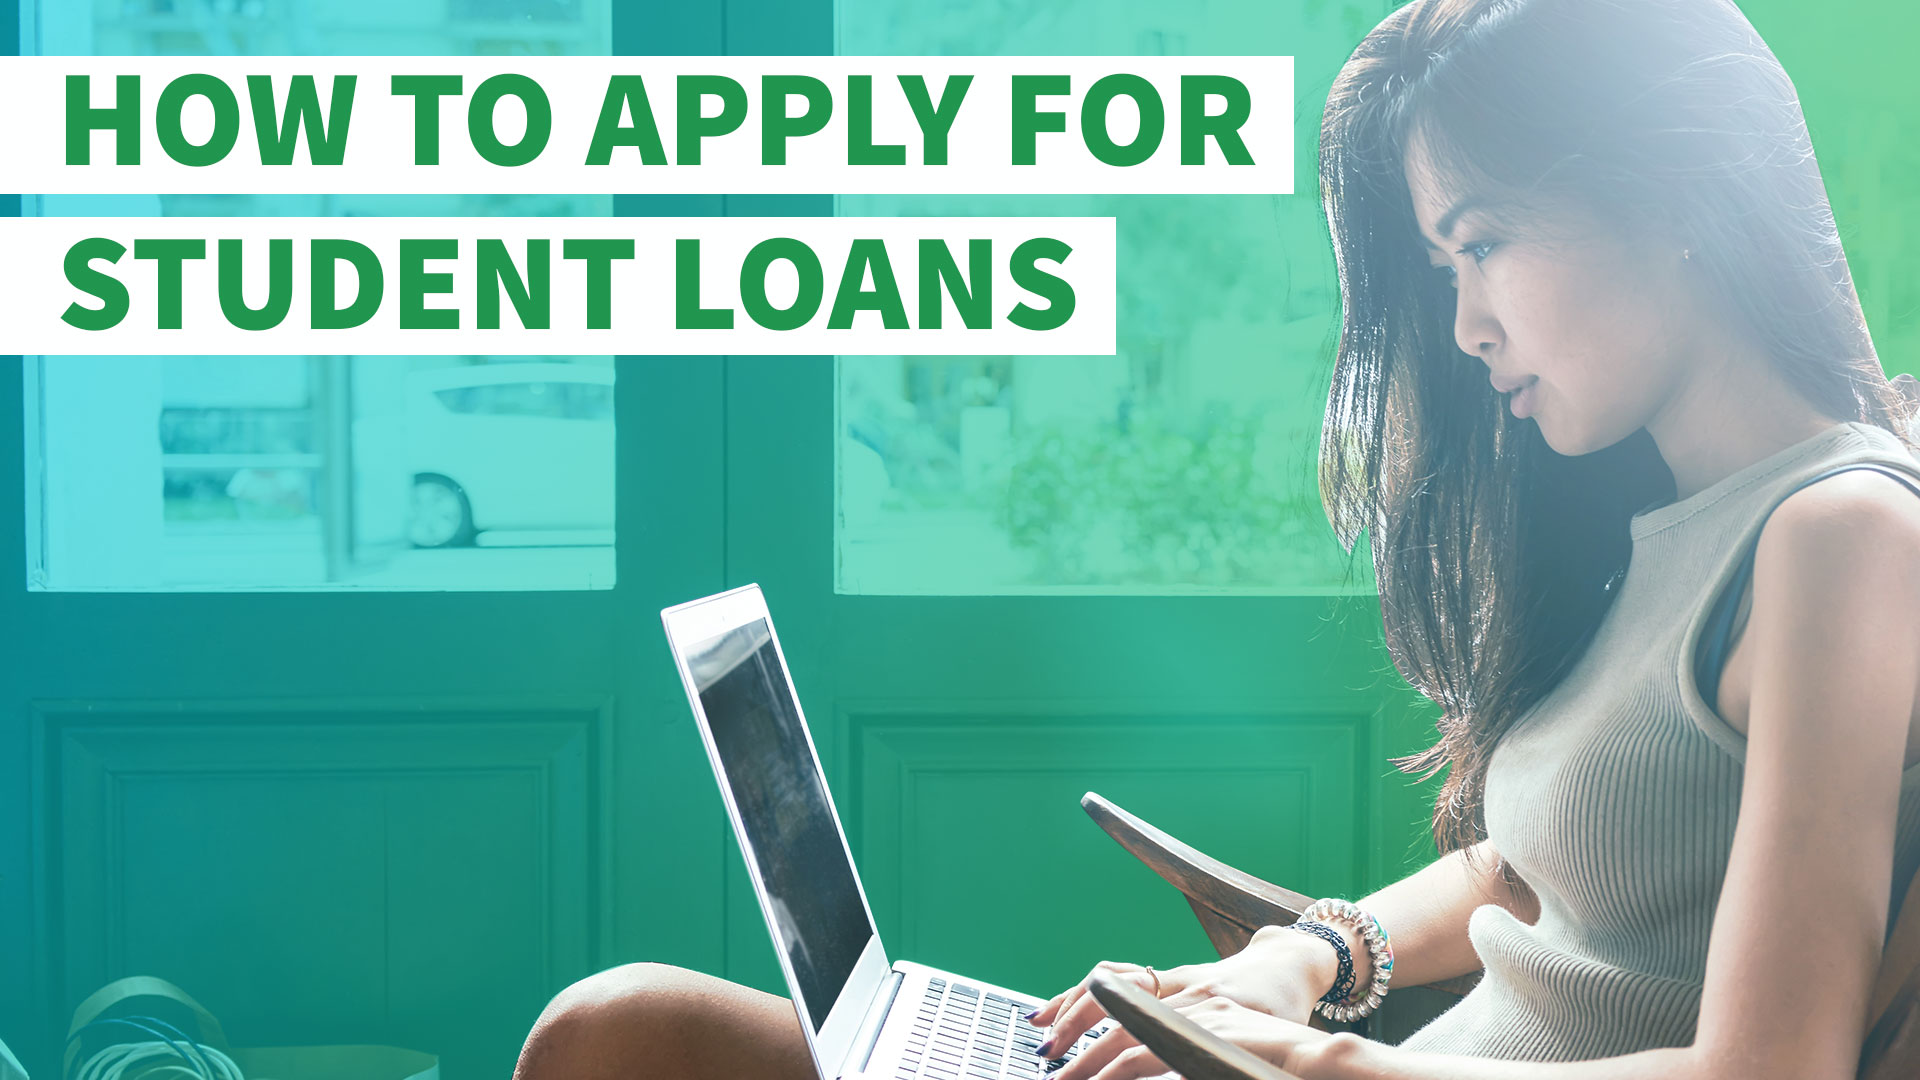 How to Apply for Student Loans | GOBankingRates